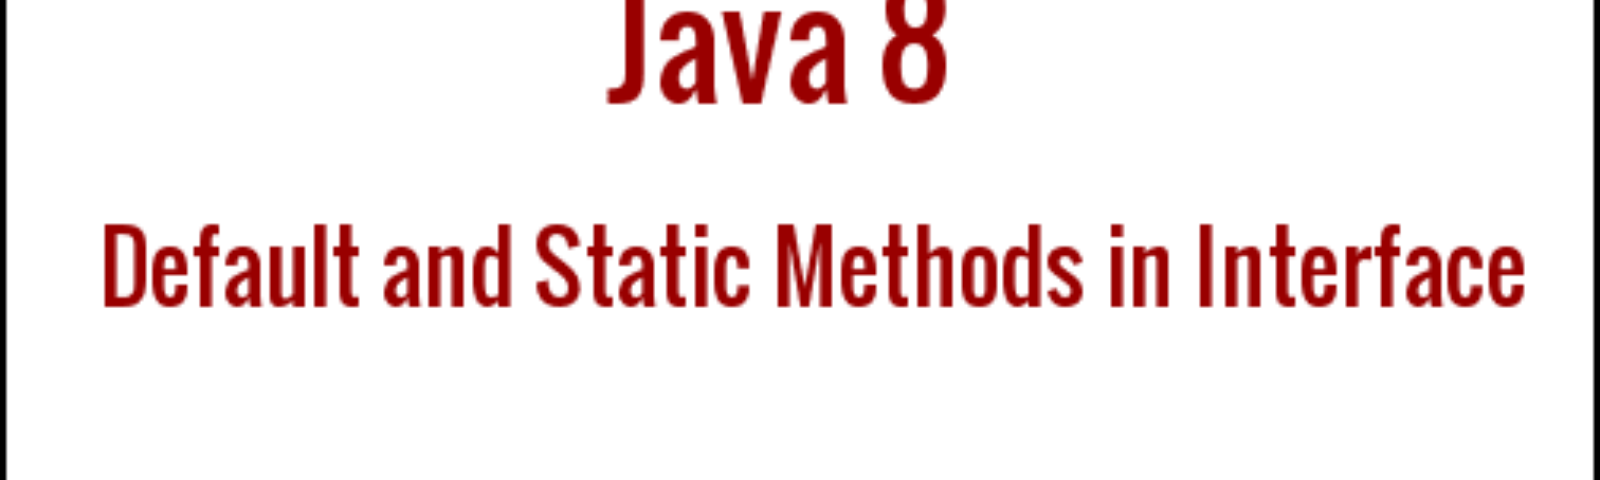 Java 8 changes in interface - Algo Shaft - Medium